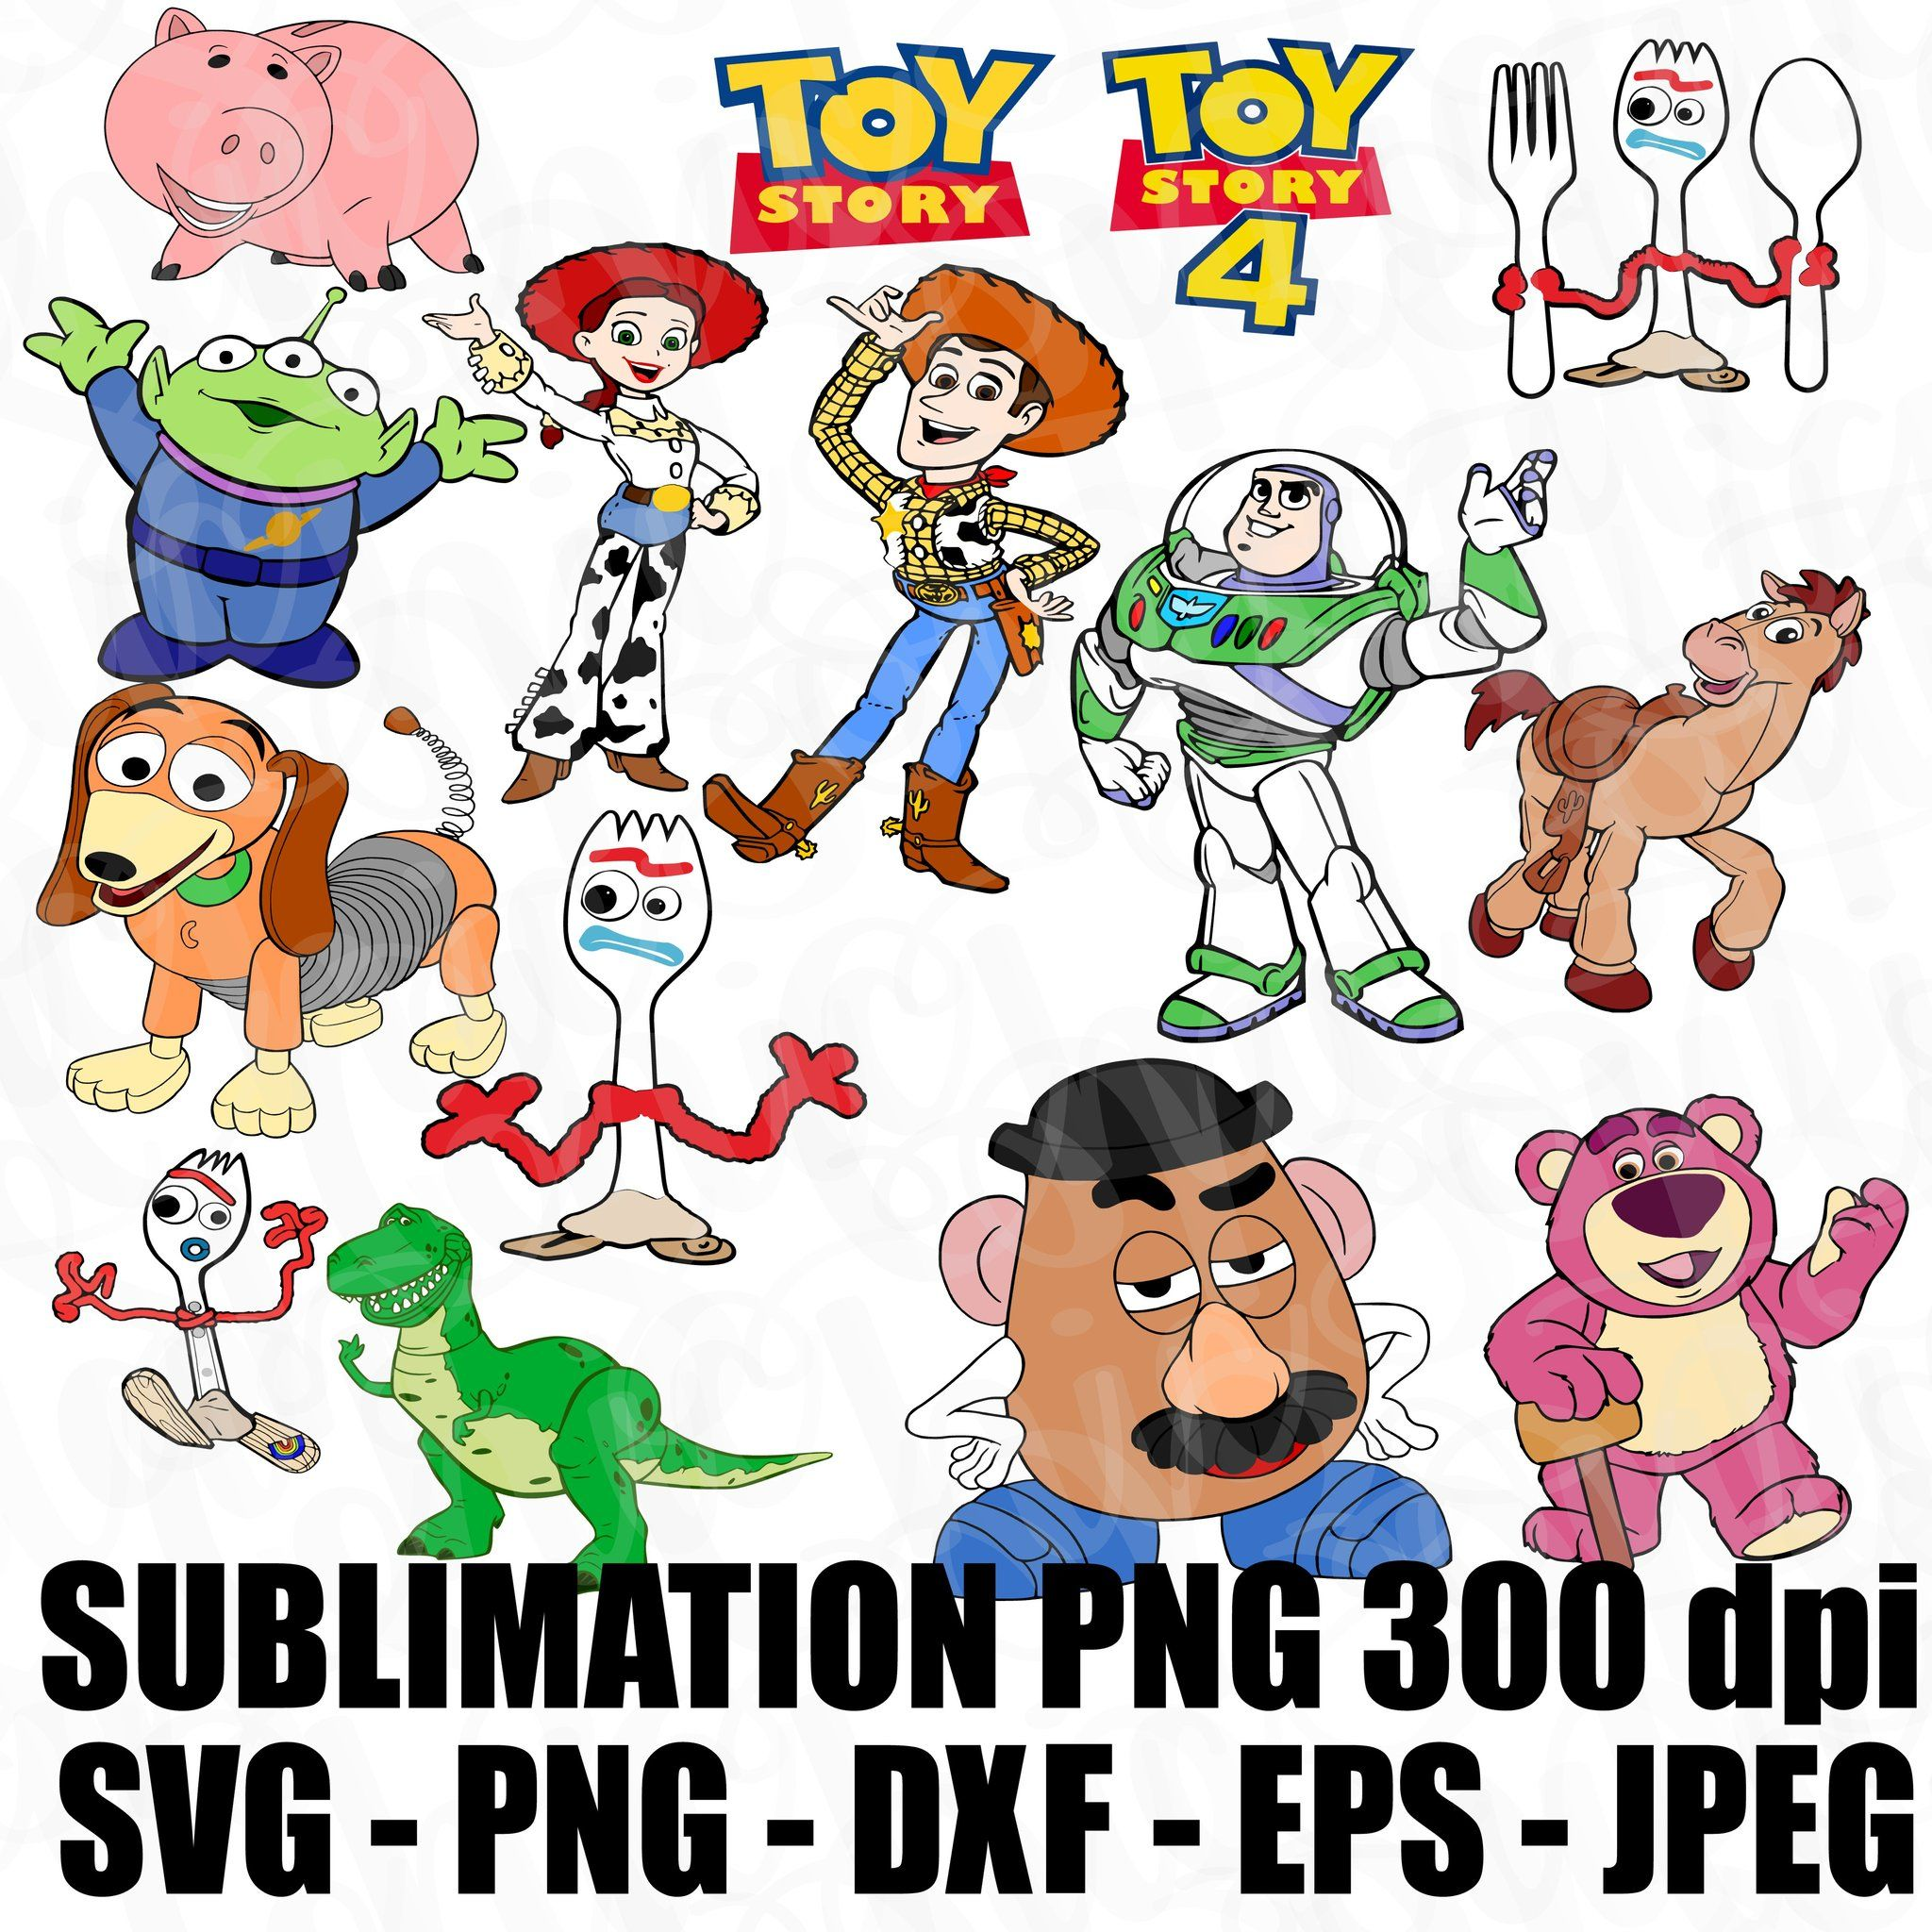 Woody Forky Toy Story 4 Logo Characters Svg Jpeg High Def 300dpi Png Dxf Eps Sublimation Iron On File Topper Stack Able Printable Layer Able In 2020 Logo Character Svg Png